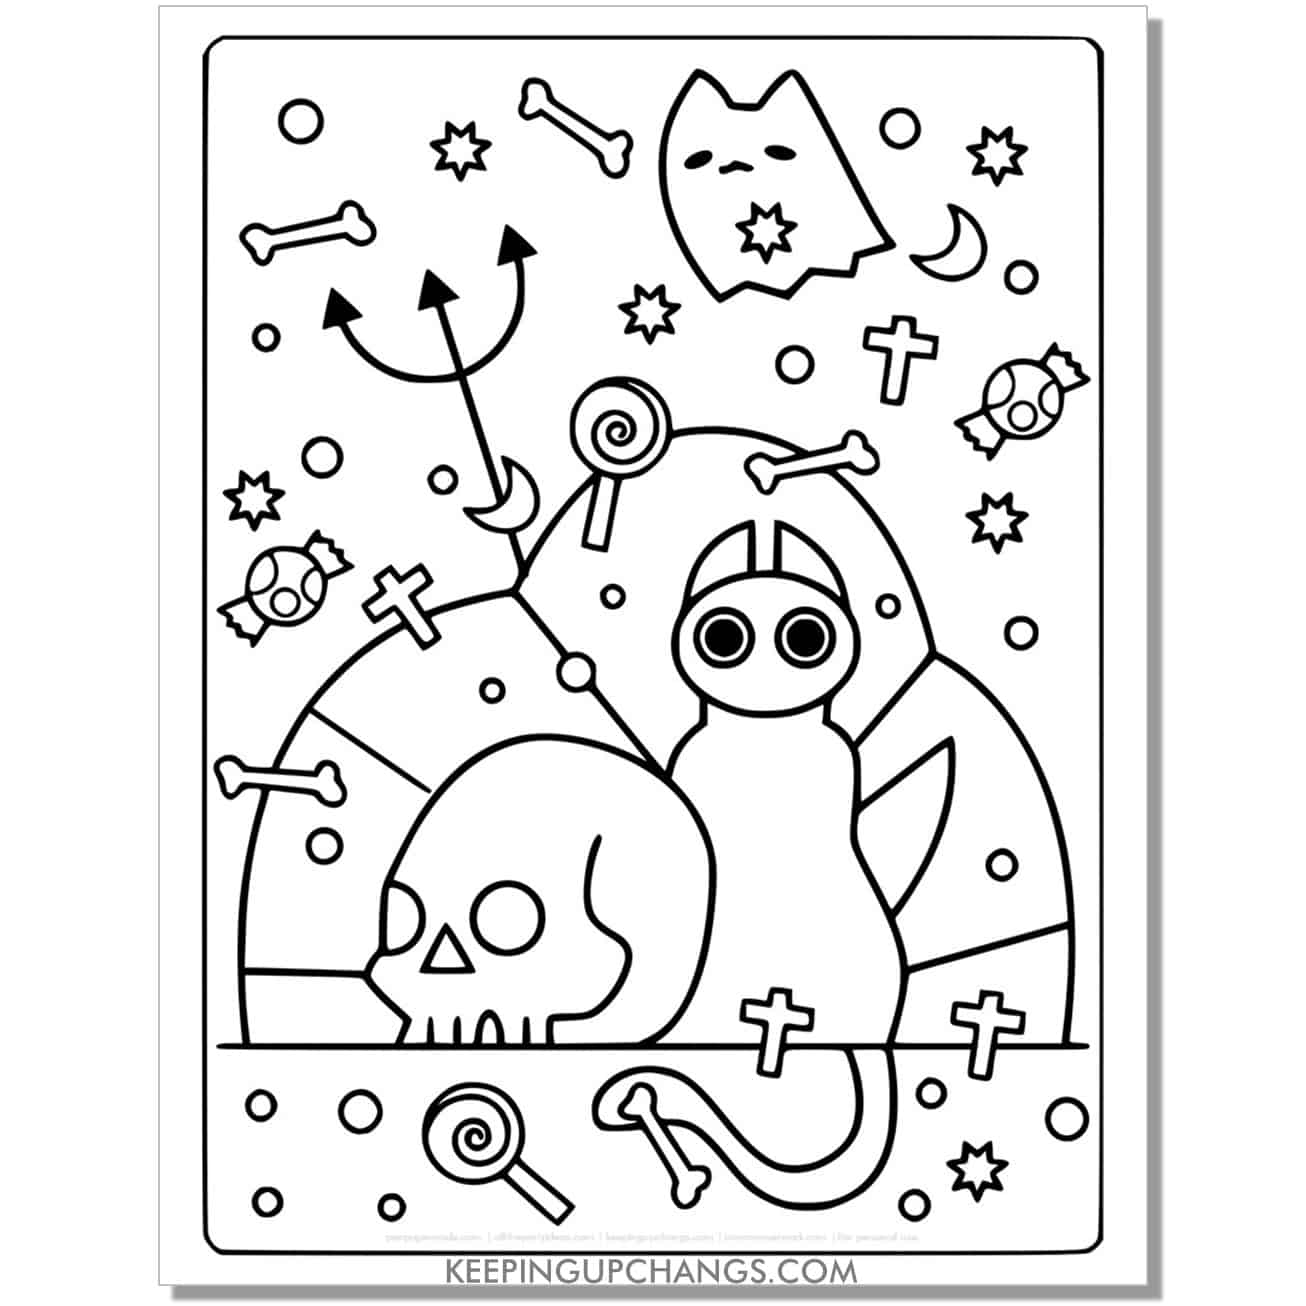 full size halloween cat devil, ghost coloring page.